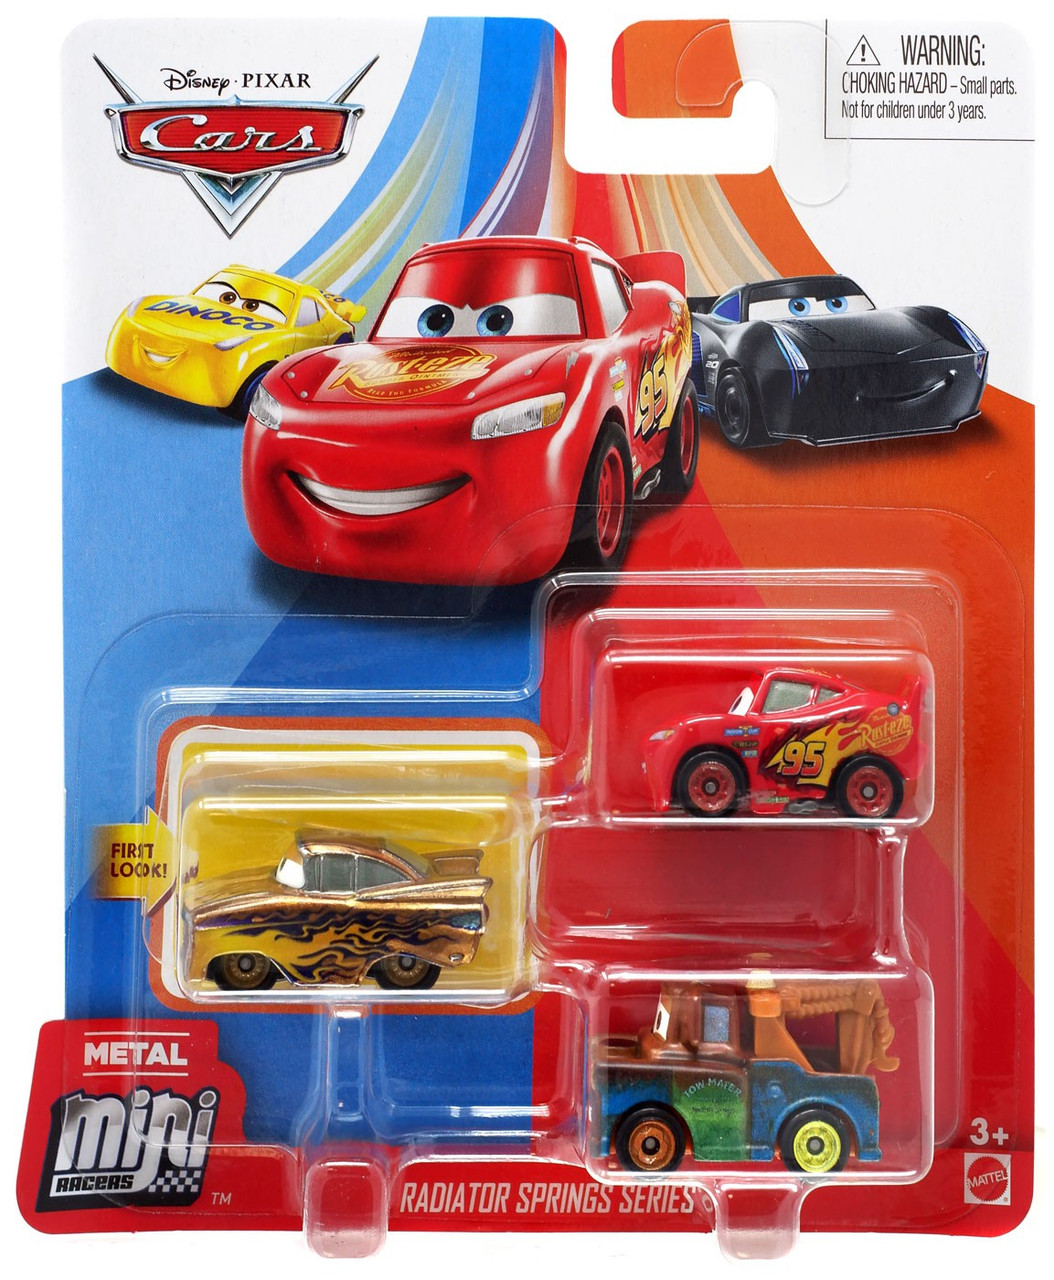 Disney Pixar Cars Die Cast Metal Mini Racers Radiator Springs Car